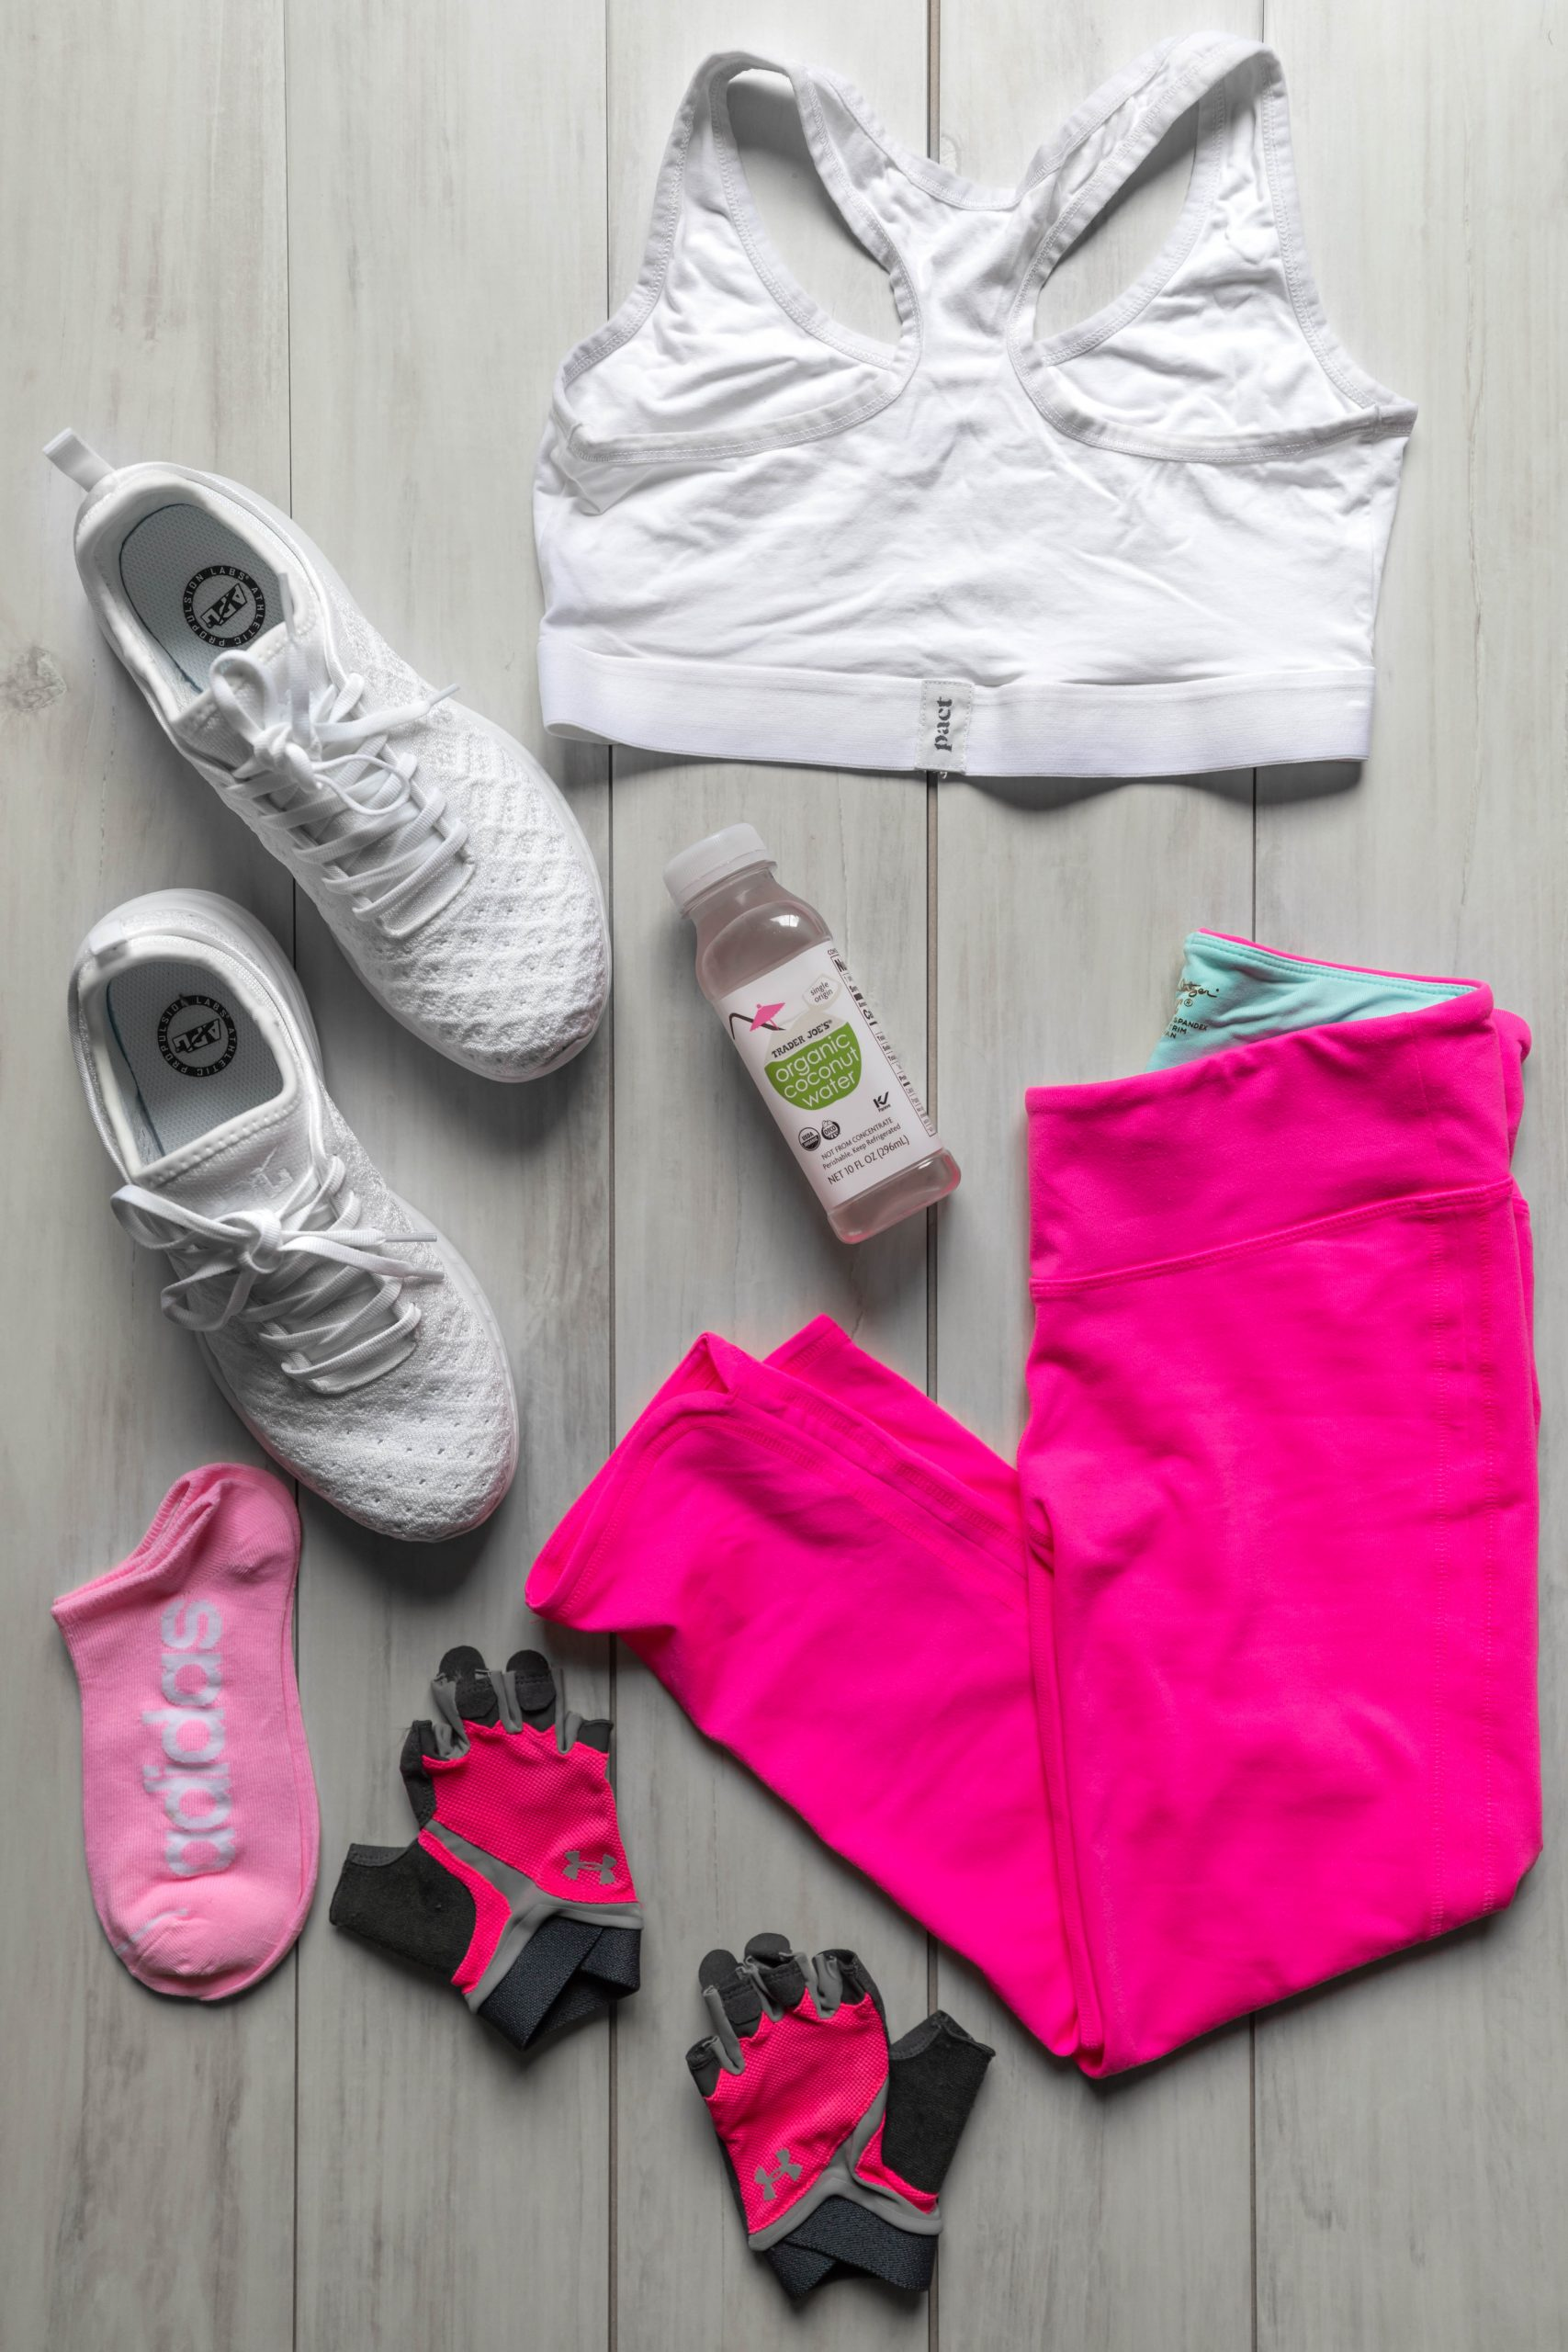 Alexis Ren 30 Day Workout Challenge Results & Review by Annie Fairfax Workout Aesthetic Outfit Pink and White Outfit Lilly Pulitzer Luxletic Pact Organic Cotton Sports Bra APL Athletic Propulsion Labs Adidas Socks Pink Girly Feminine Workout Clothing